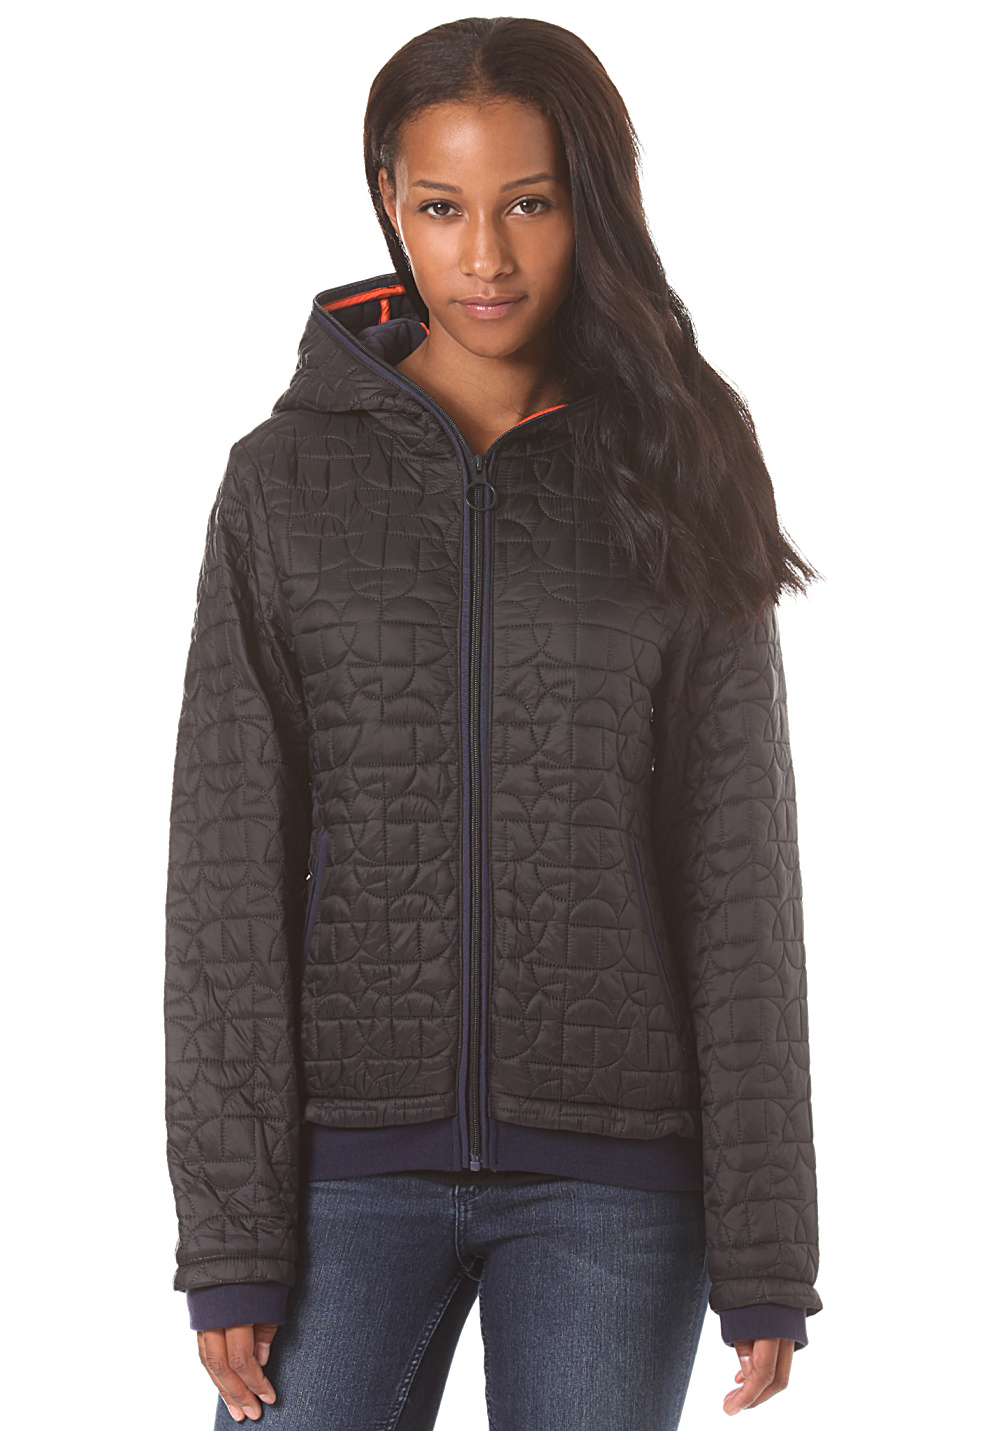 Bench Quilted Jacket For Women Black Planet Sports